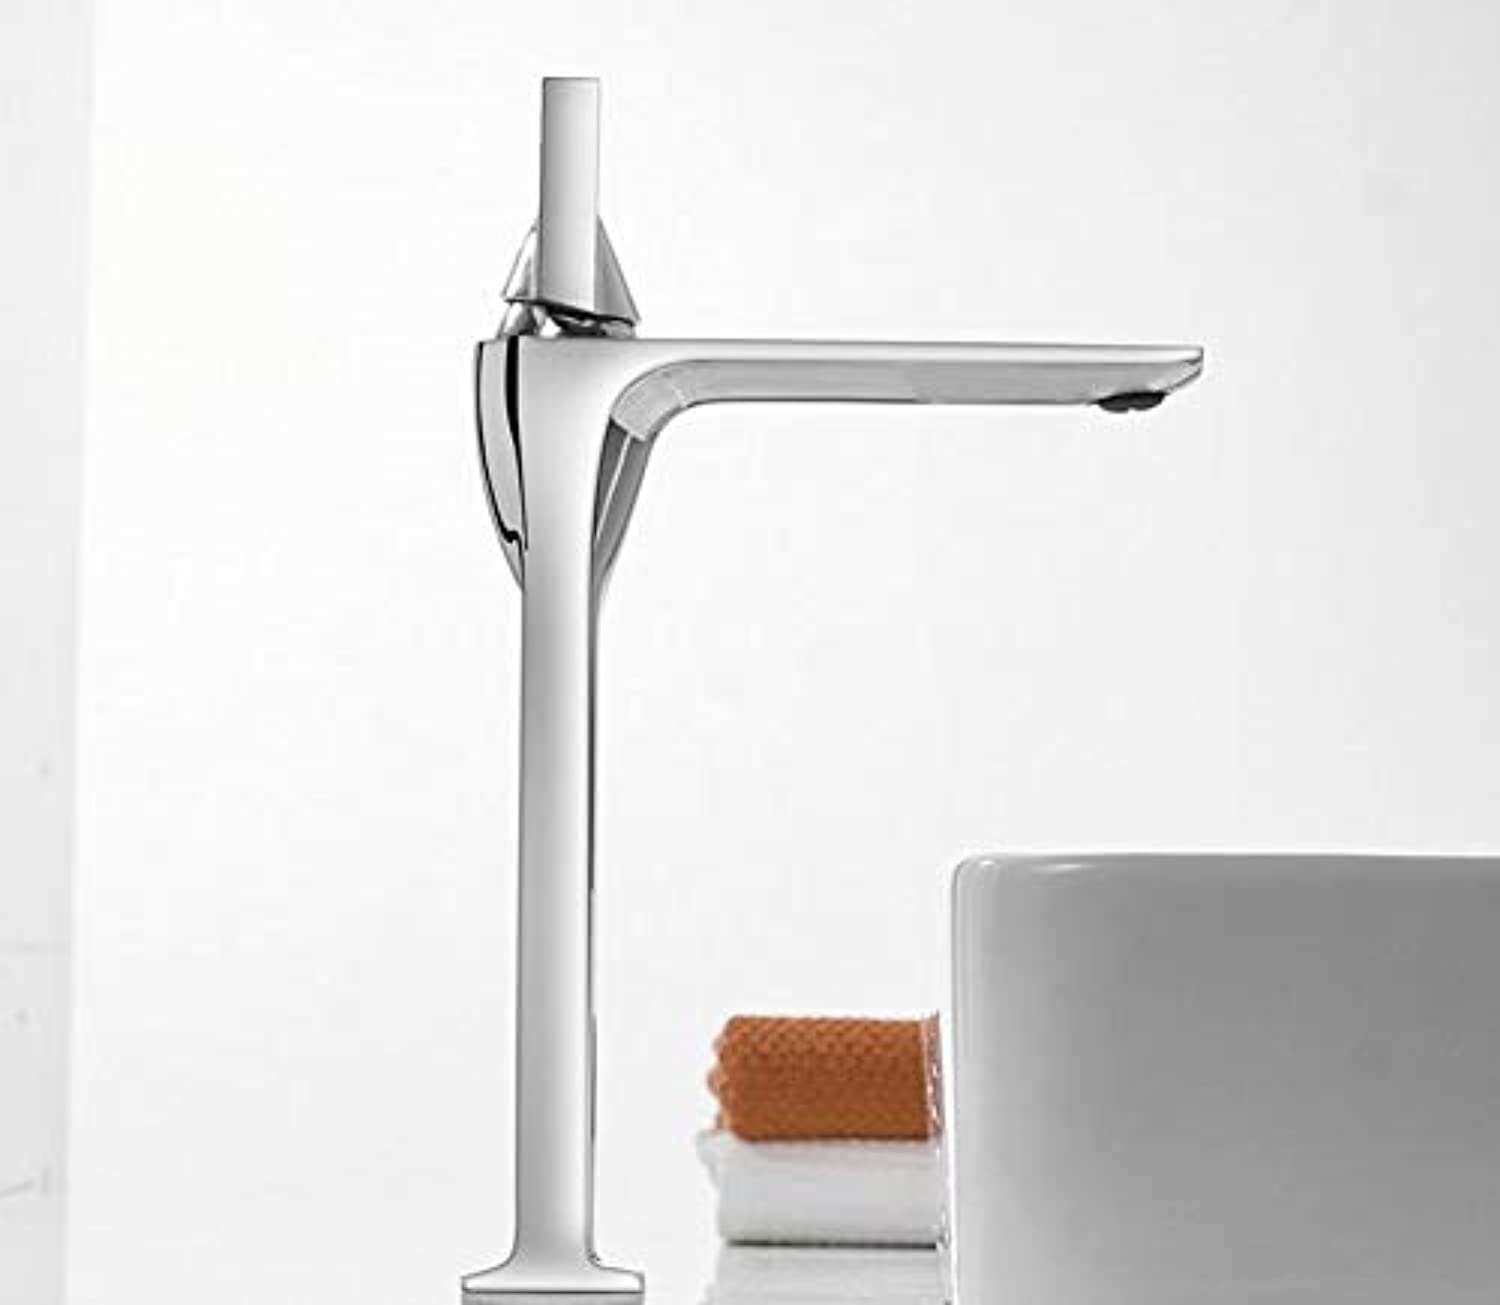 Faucet Wash Basin Basin Faucet Retro Black Faucet Taps Bathroom Sink Faucet Single Handle Hole Deck Vintage Wash Hot Cold Mixer Tap